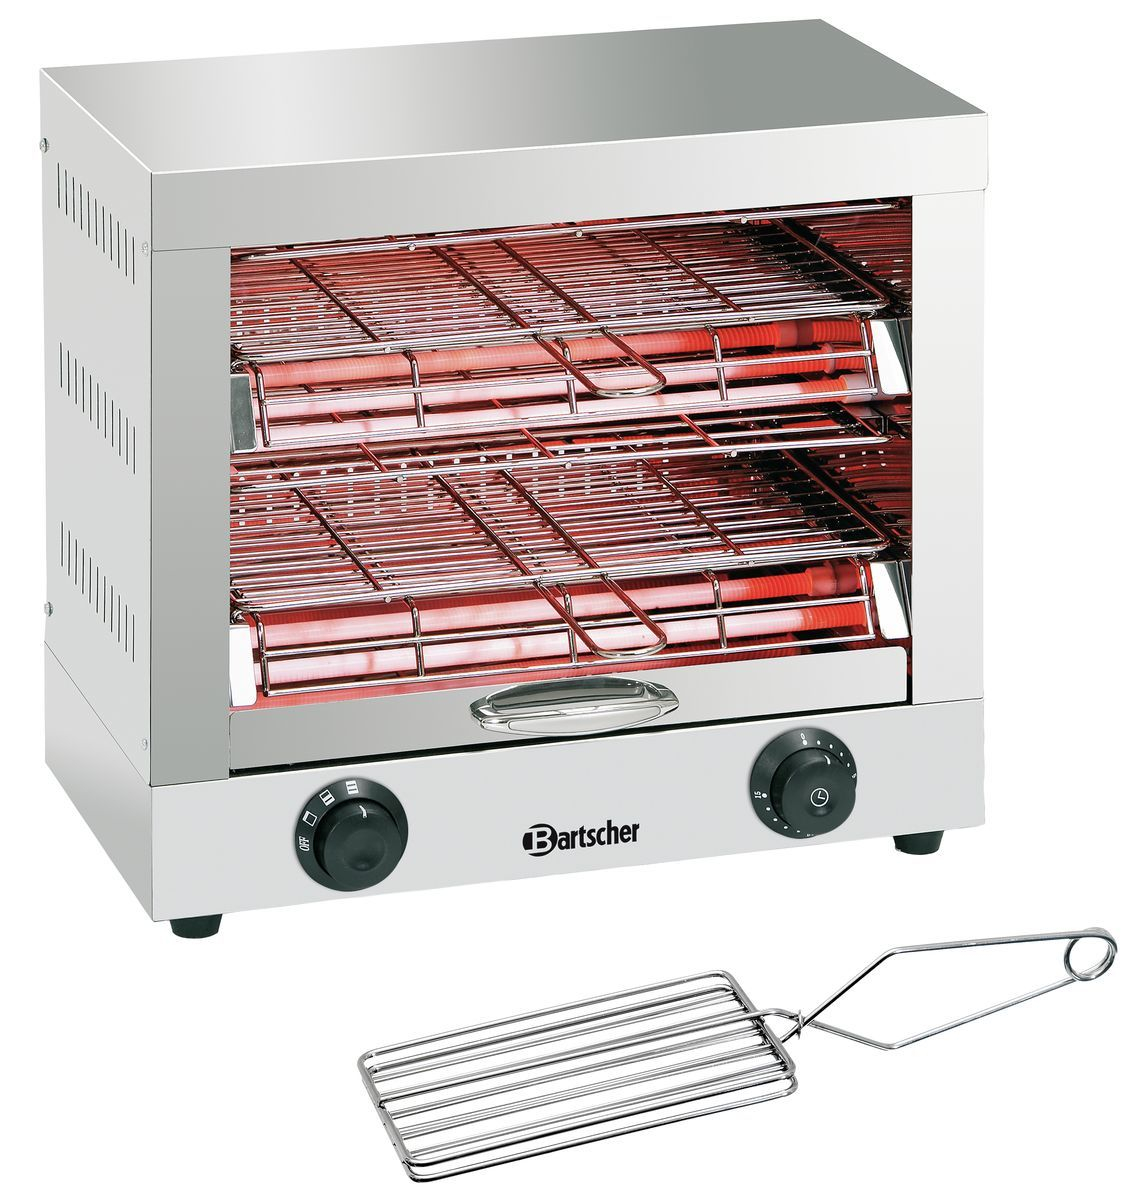 Appareil toaster/gratiner, double